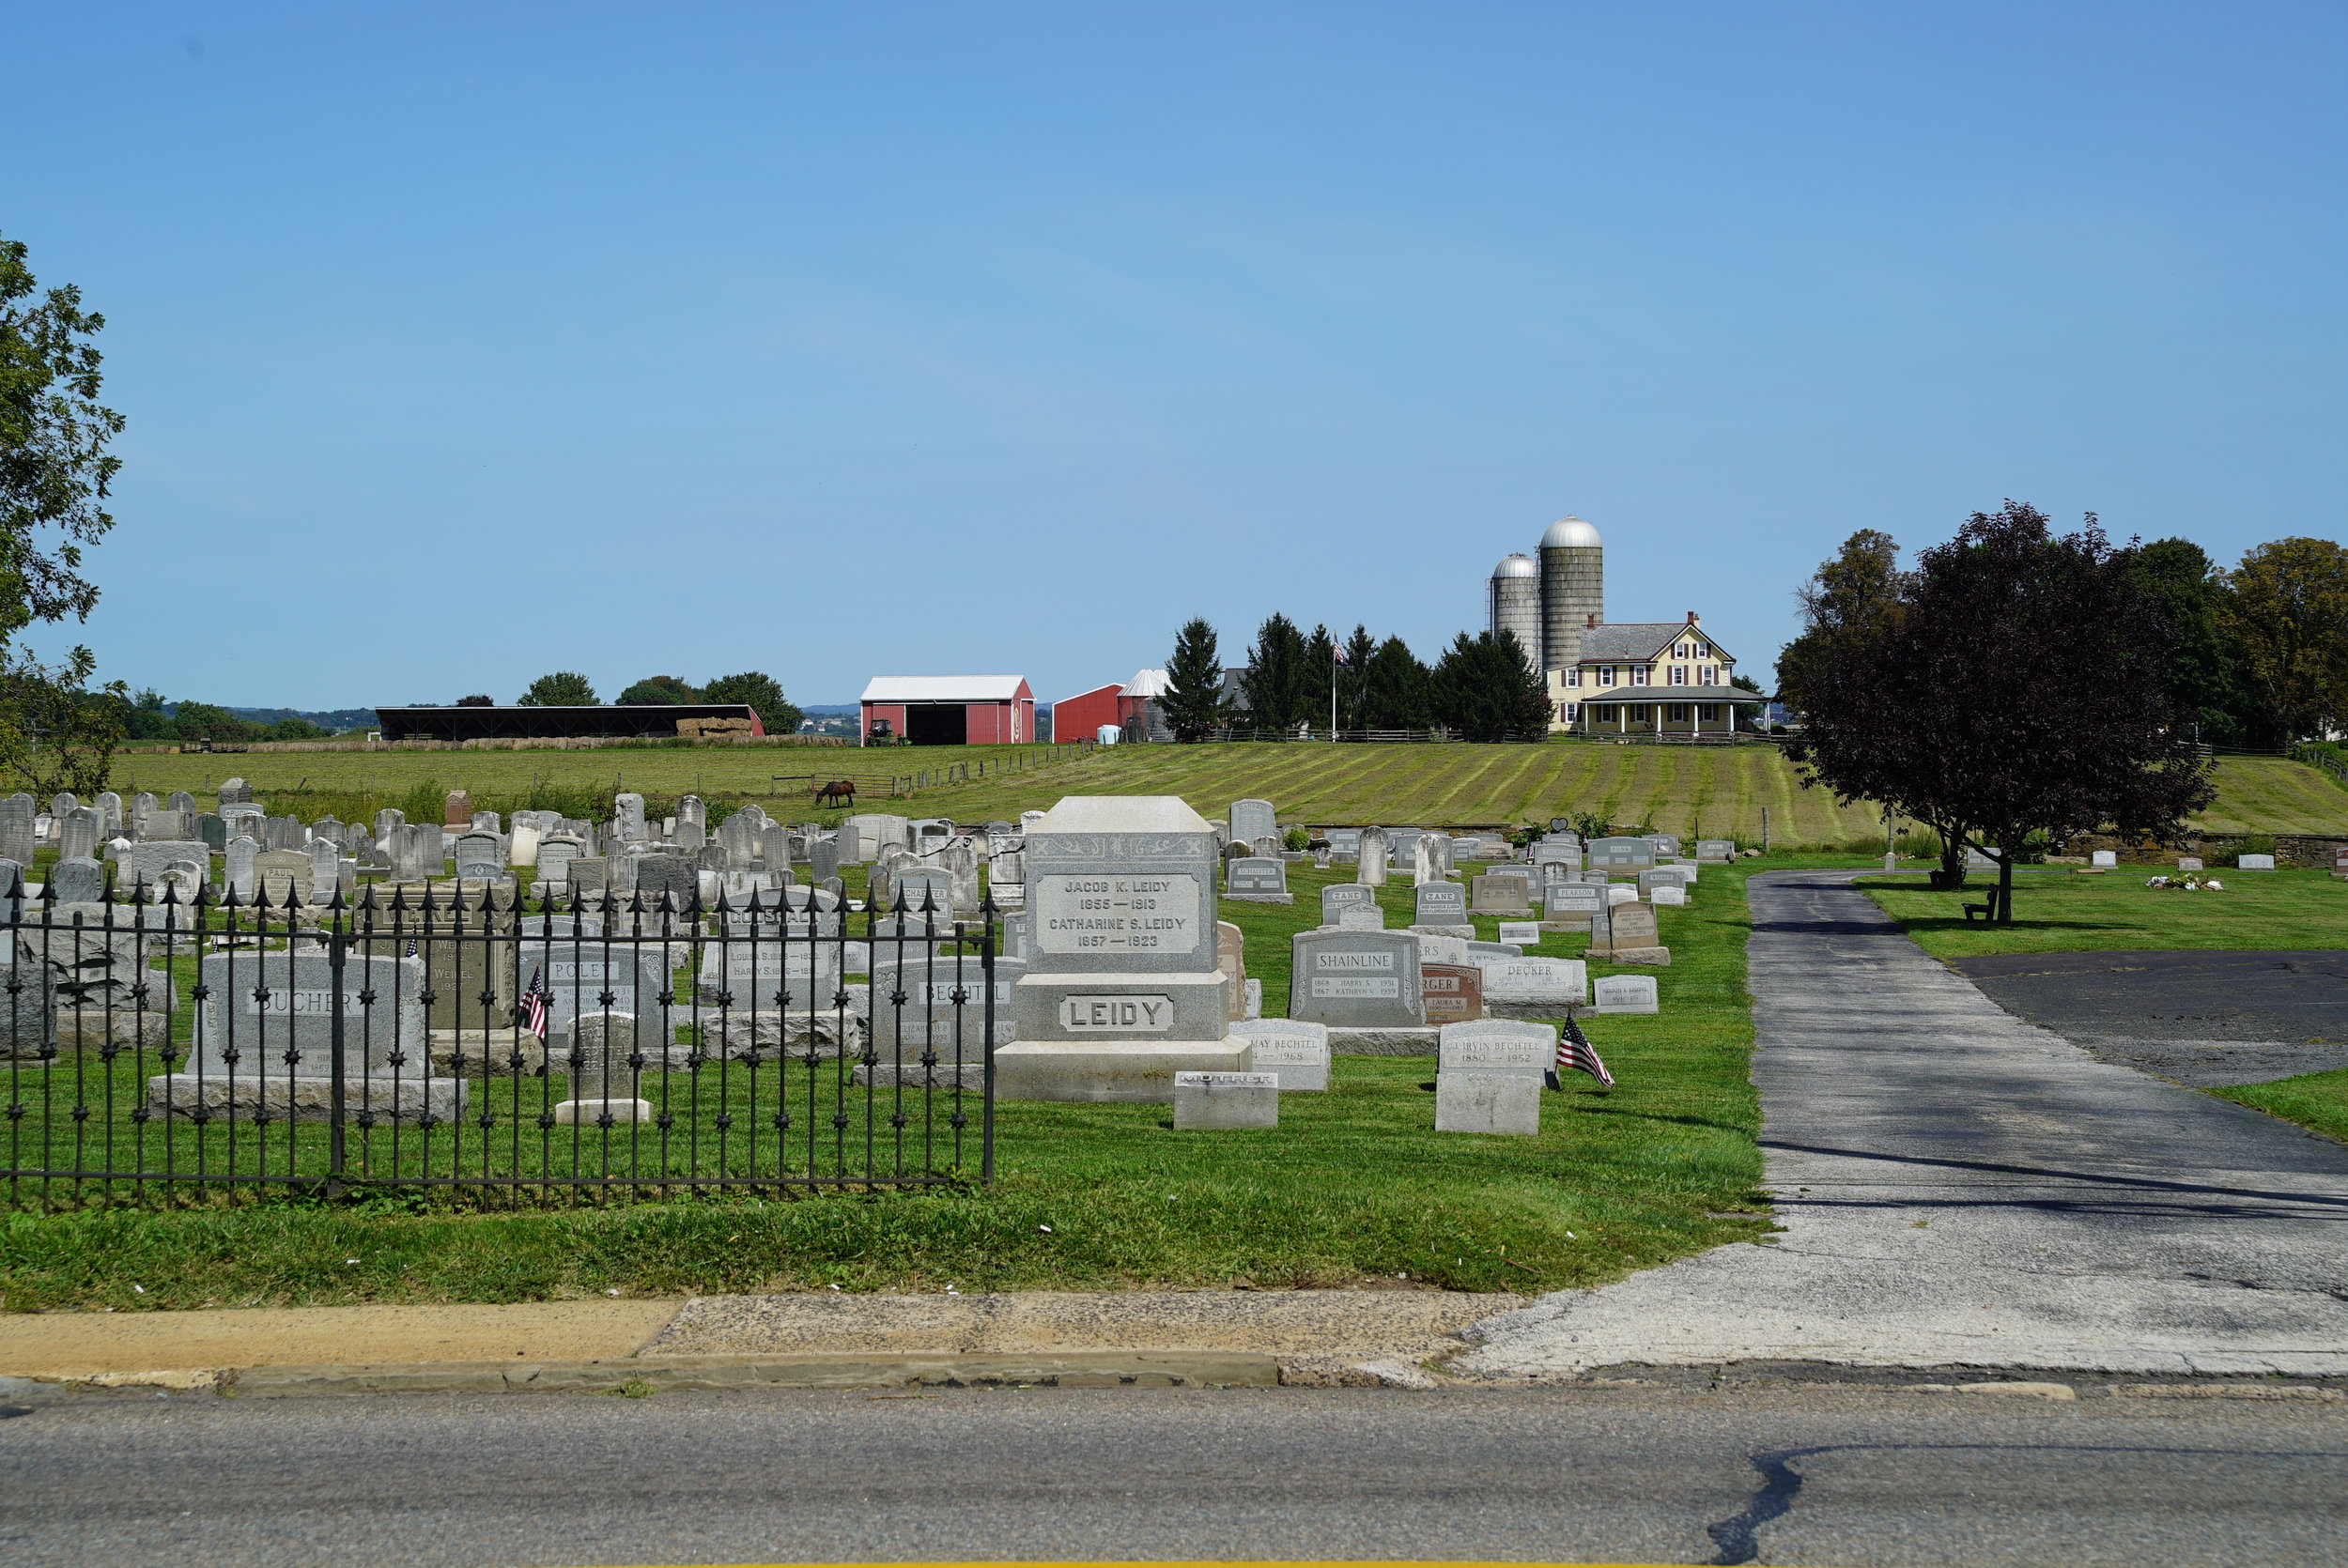 St. Luke's United Church of Christ Cemetery. Trappe, Pennsylvania.